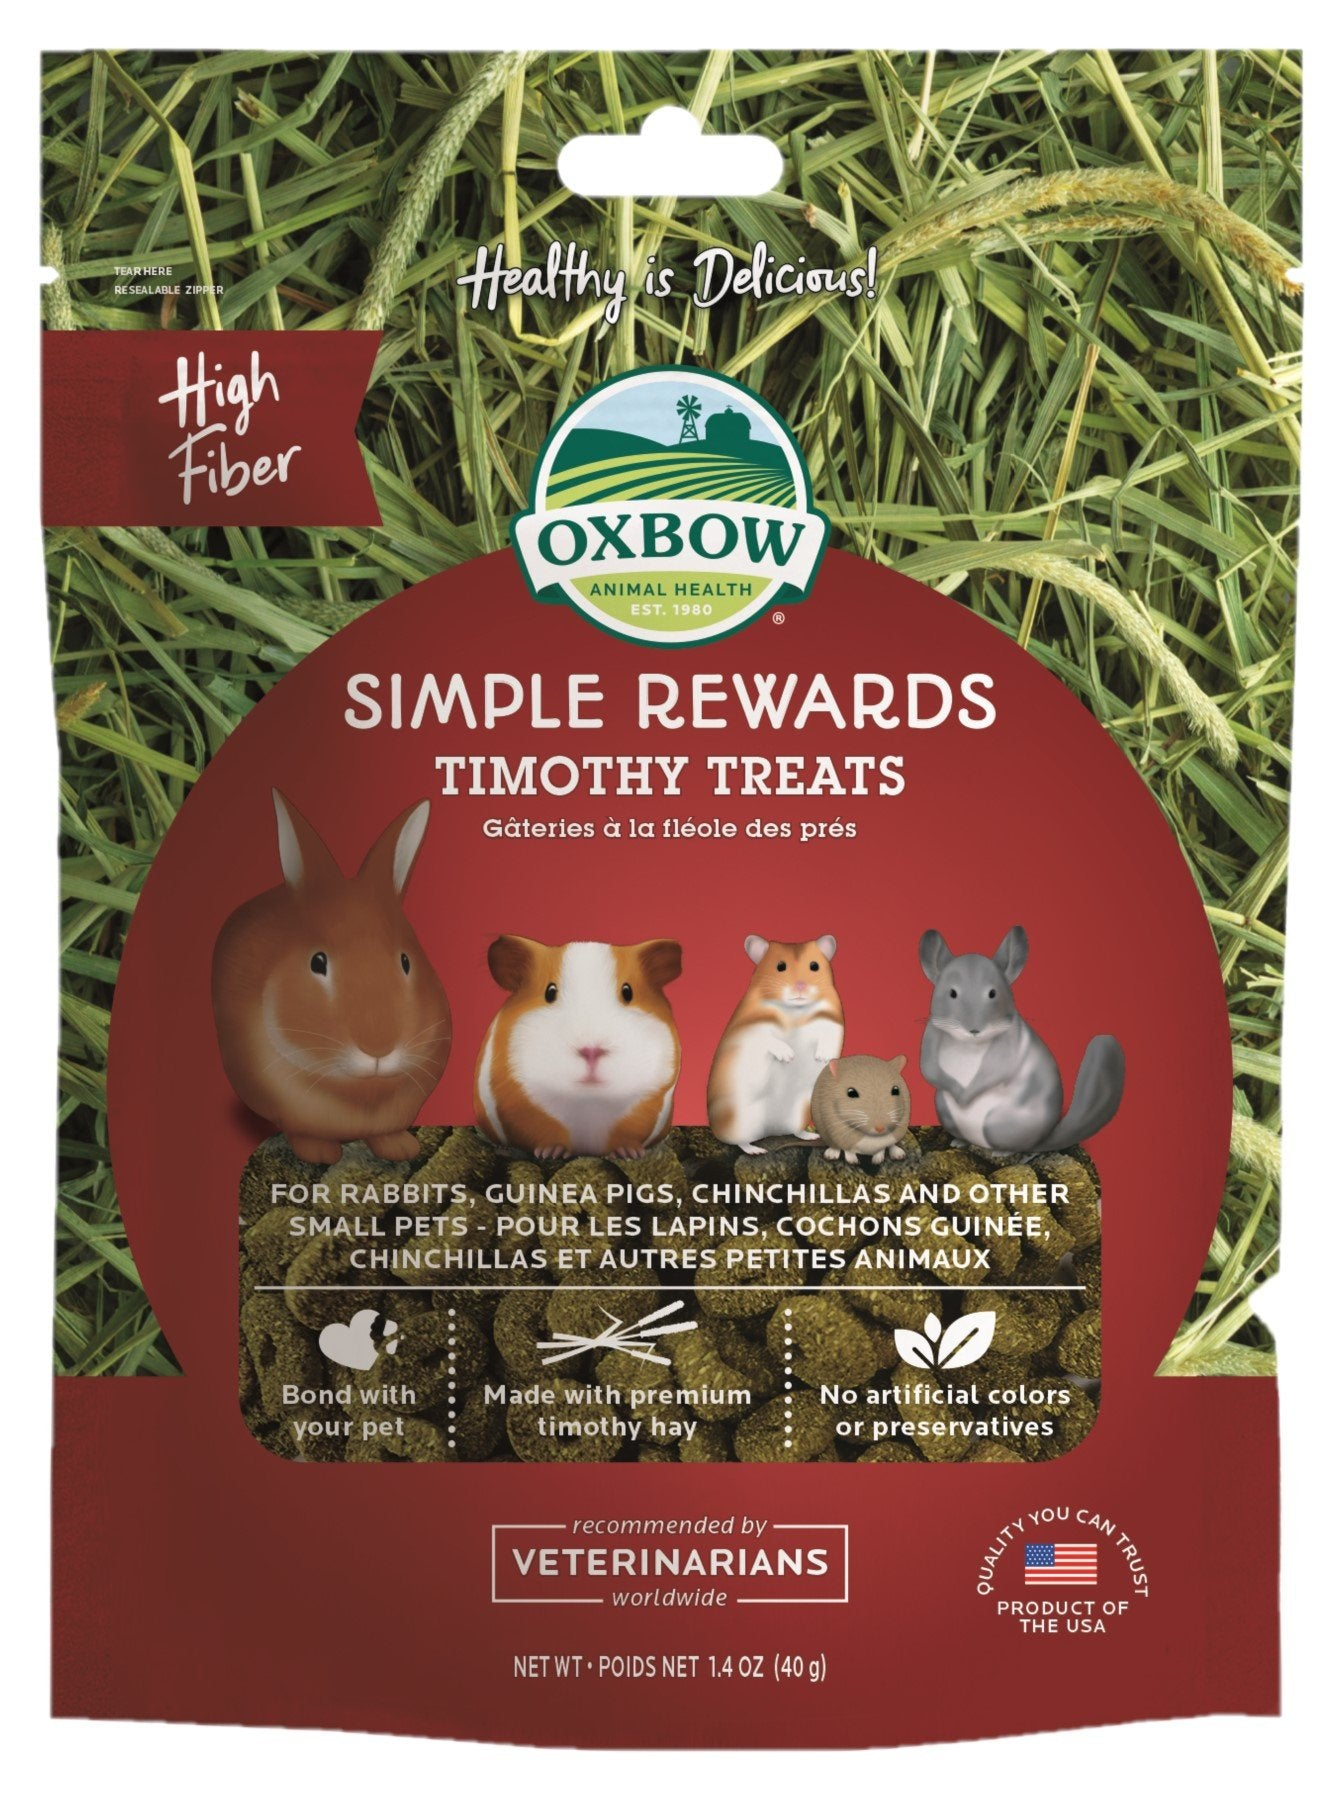 Oxbow Simple Rewards Timothy Treats 40g - RSPCA VIC